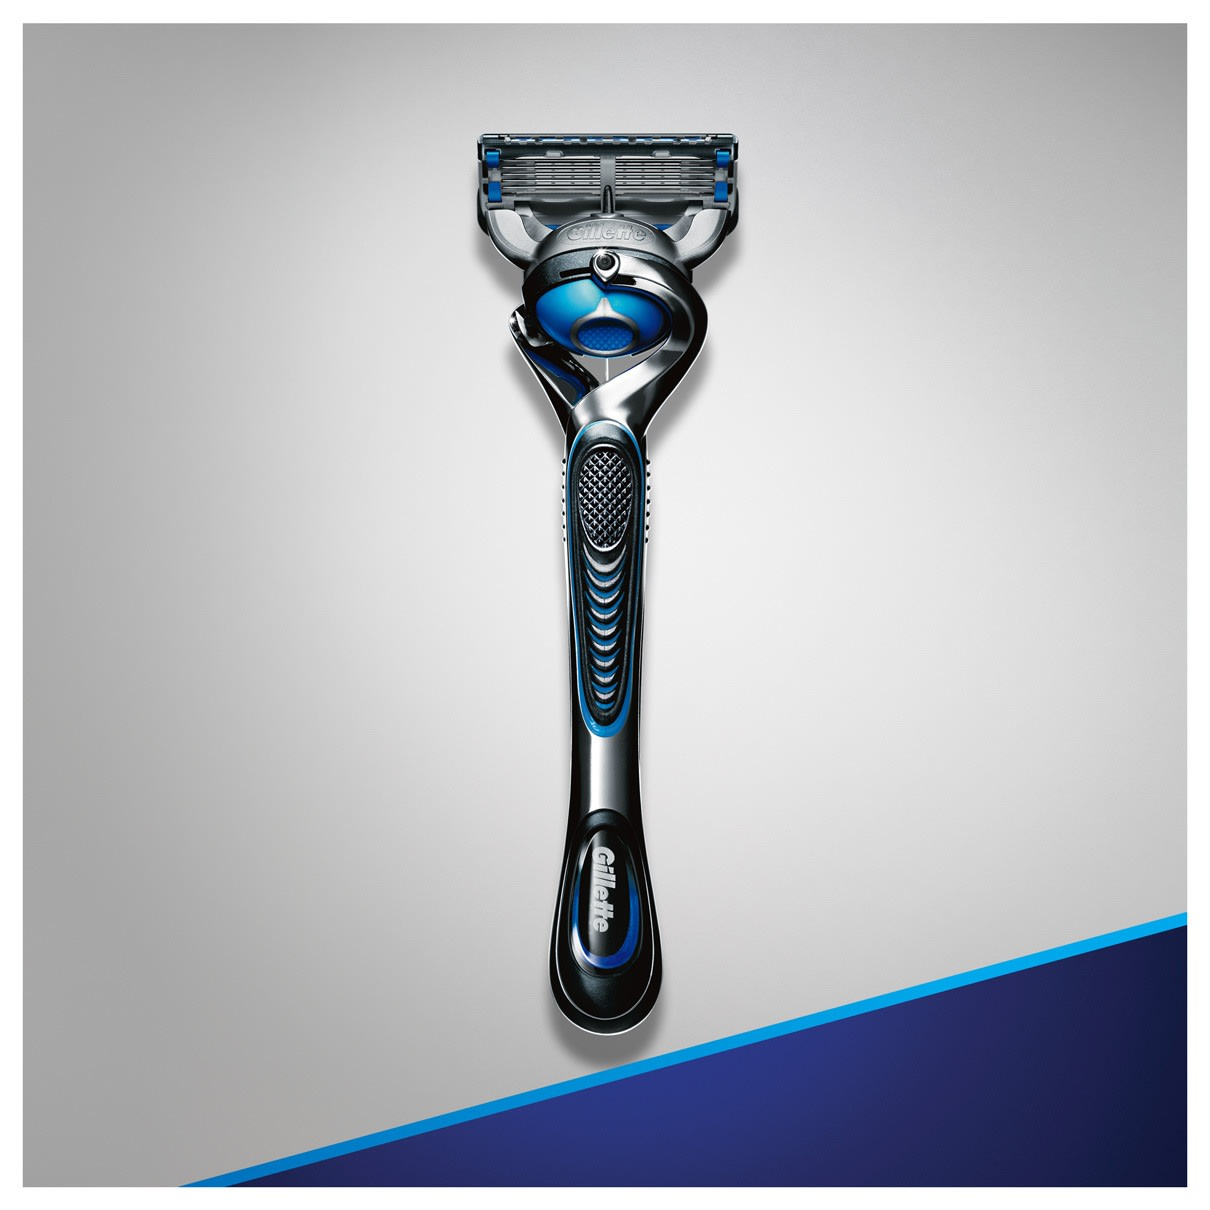 10. Triple your shield* gentle to the last stroke *2 razor lubricating surfaces plus shave gel""